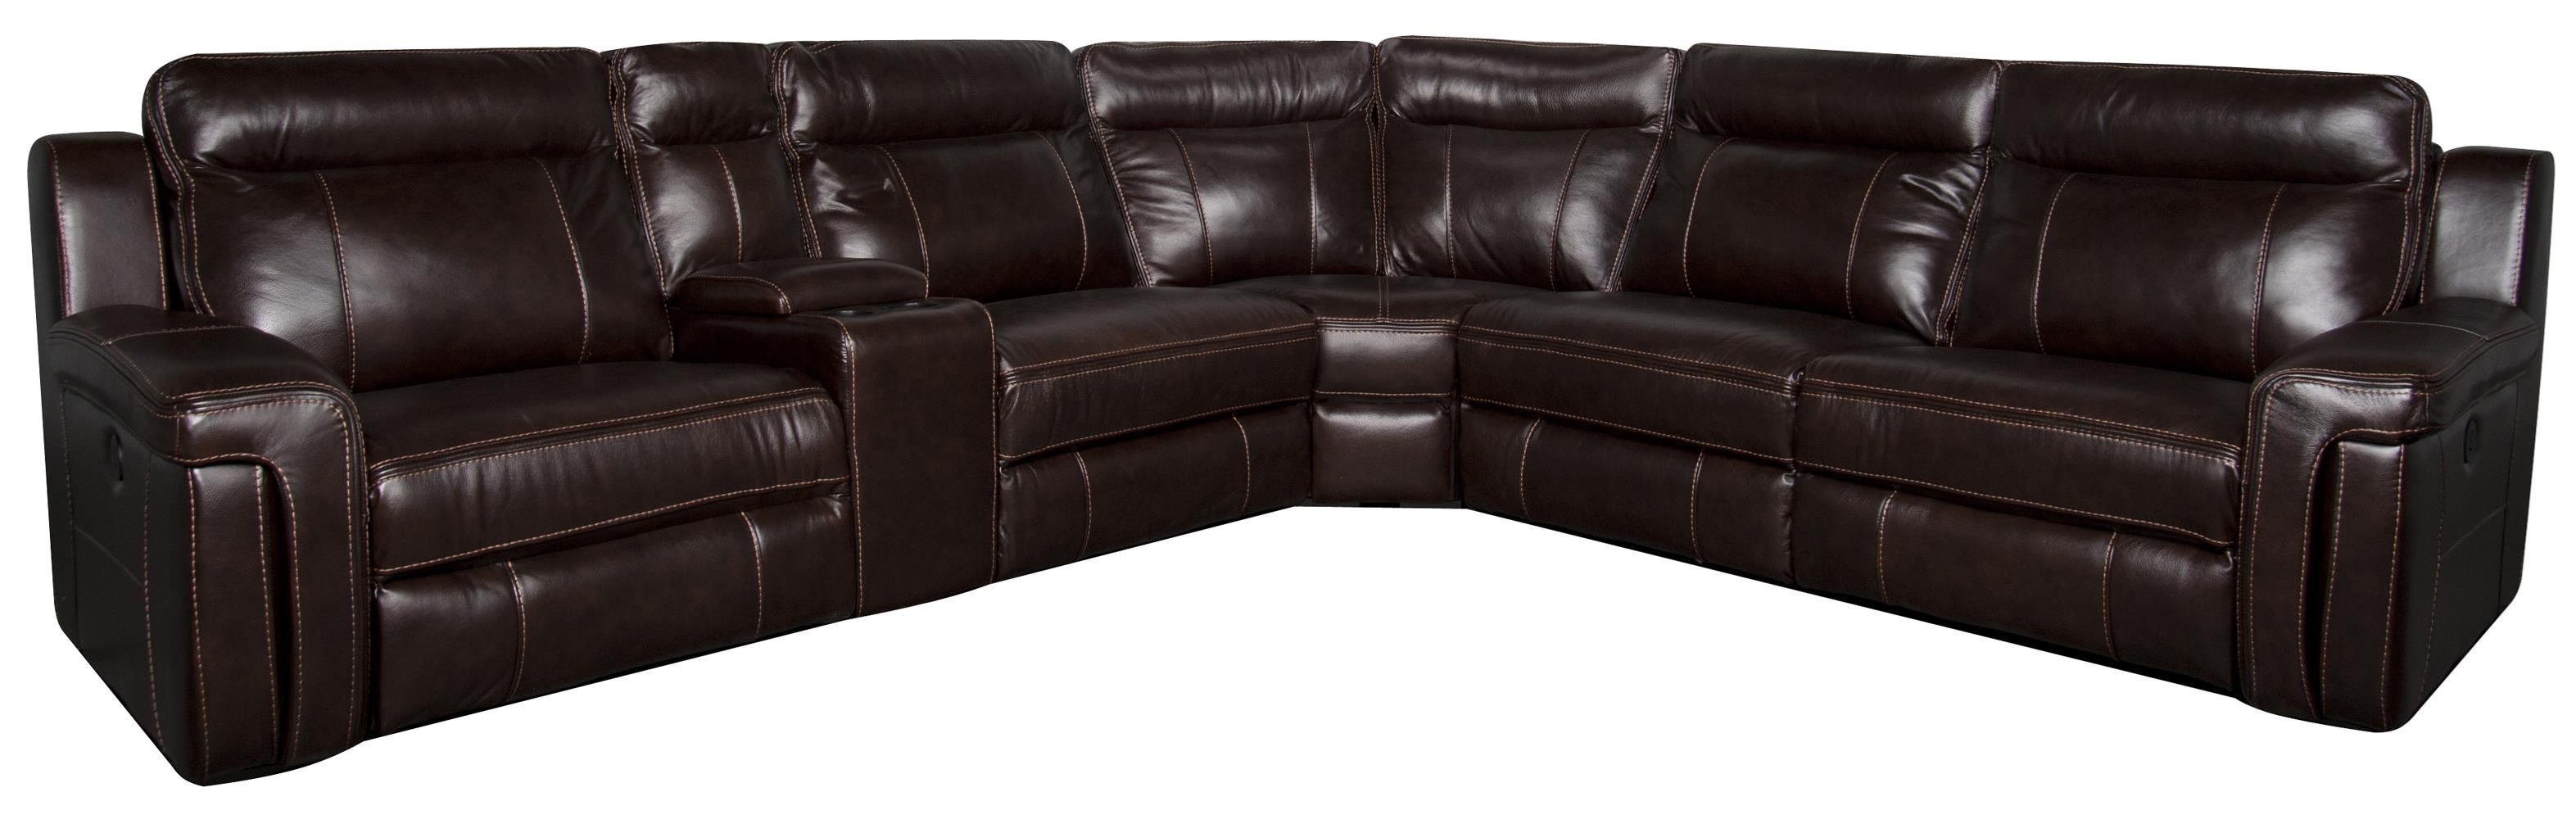 Morris Home Furnishings Roddrick Roddrick 6- Piece Leather-Match*  Power Sect - Item Number: 134851577